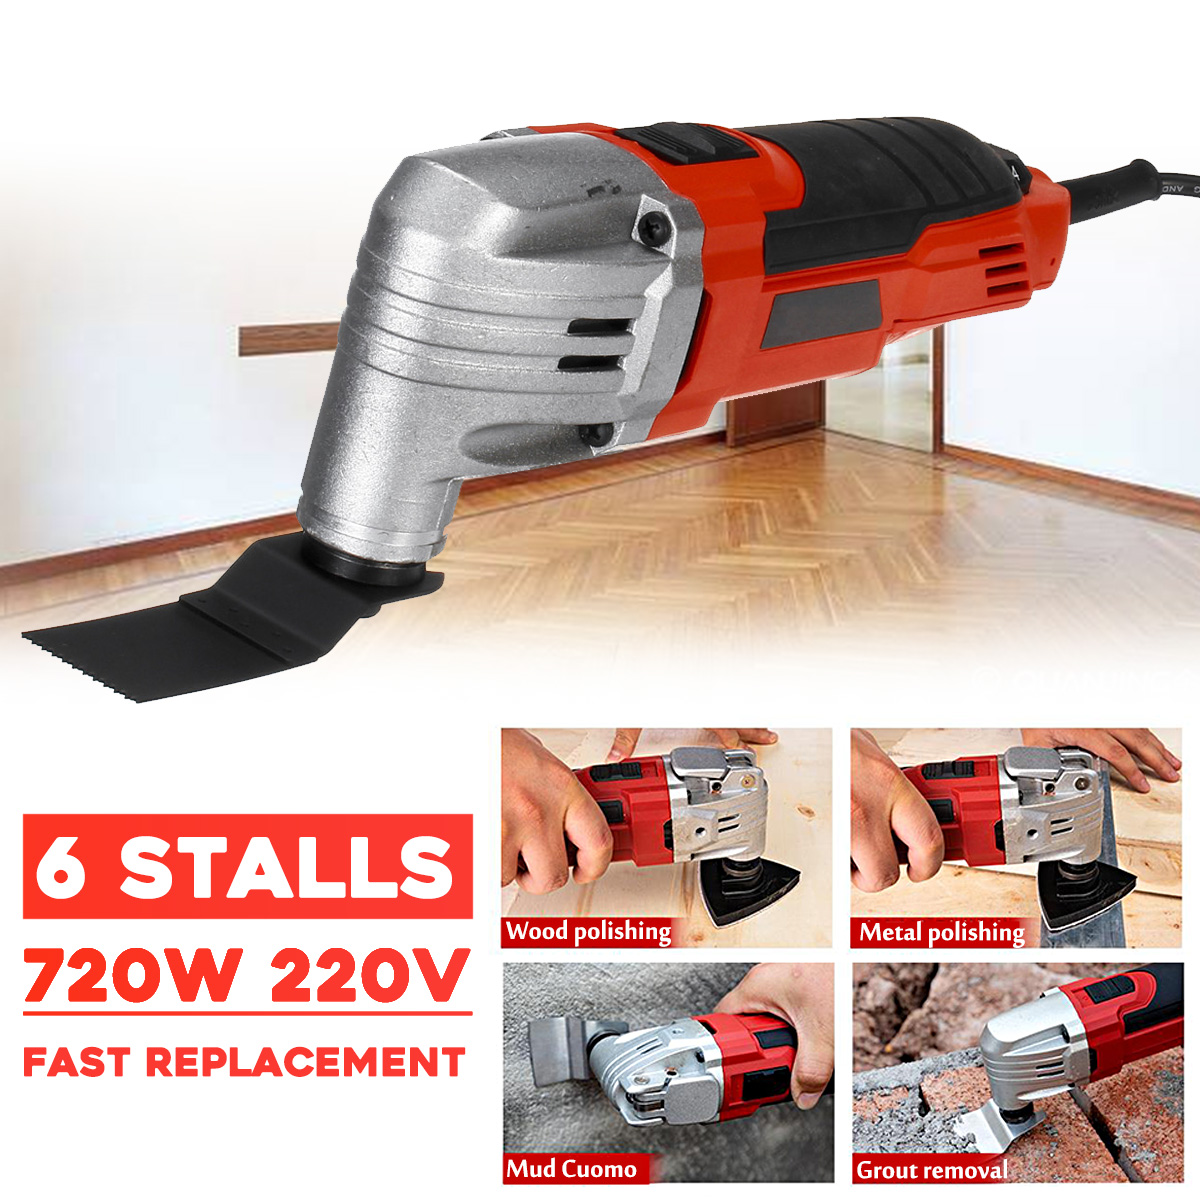 Electric Trimmer 6 Variable Speed Swing Tool Set 220V 20W Cutting Machine Oscillating Multi-Tool Electric Saw Renovator Tool